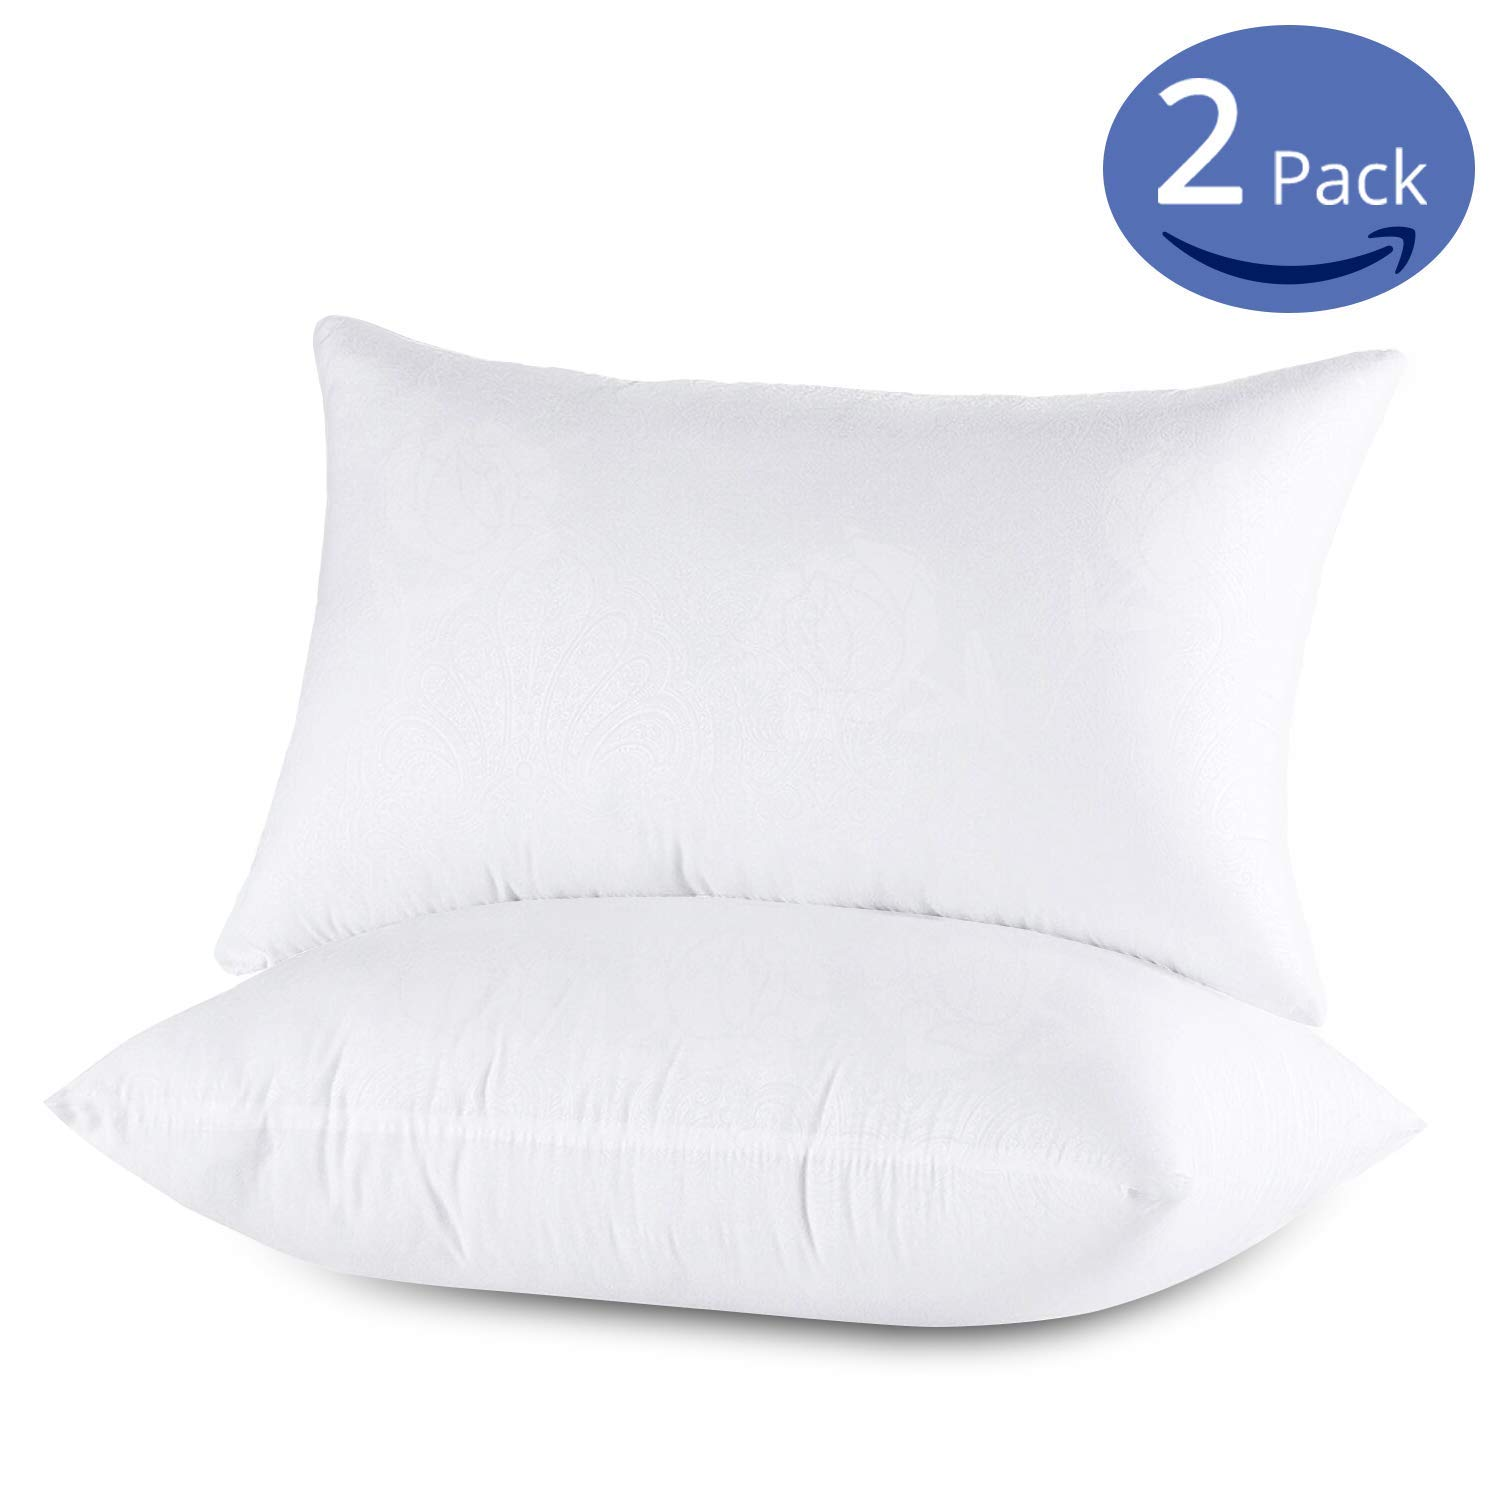 Emolli Standard Bed Pillows for Sleeping 2 Pack, Luxury Hotel Pillows Super Soft Down Microfiber Alternative and 100% Cotton Cover Soft Comfortable